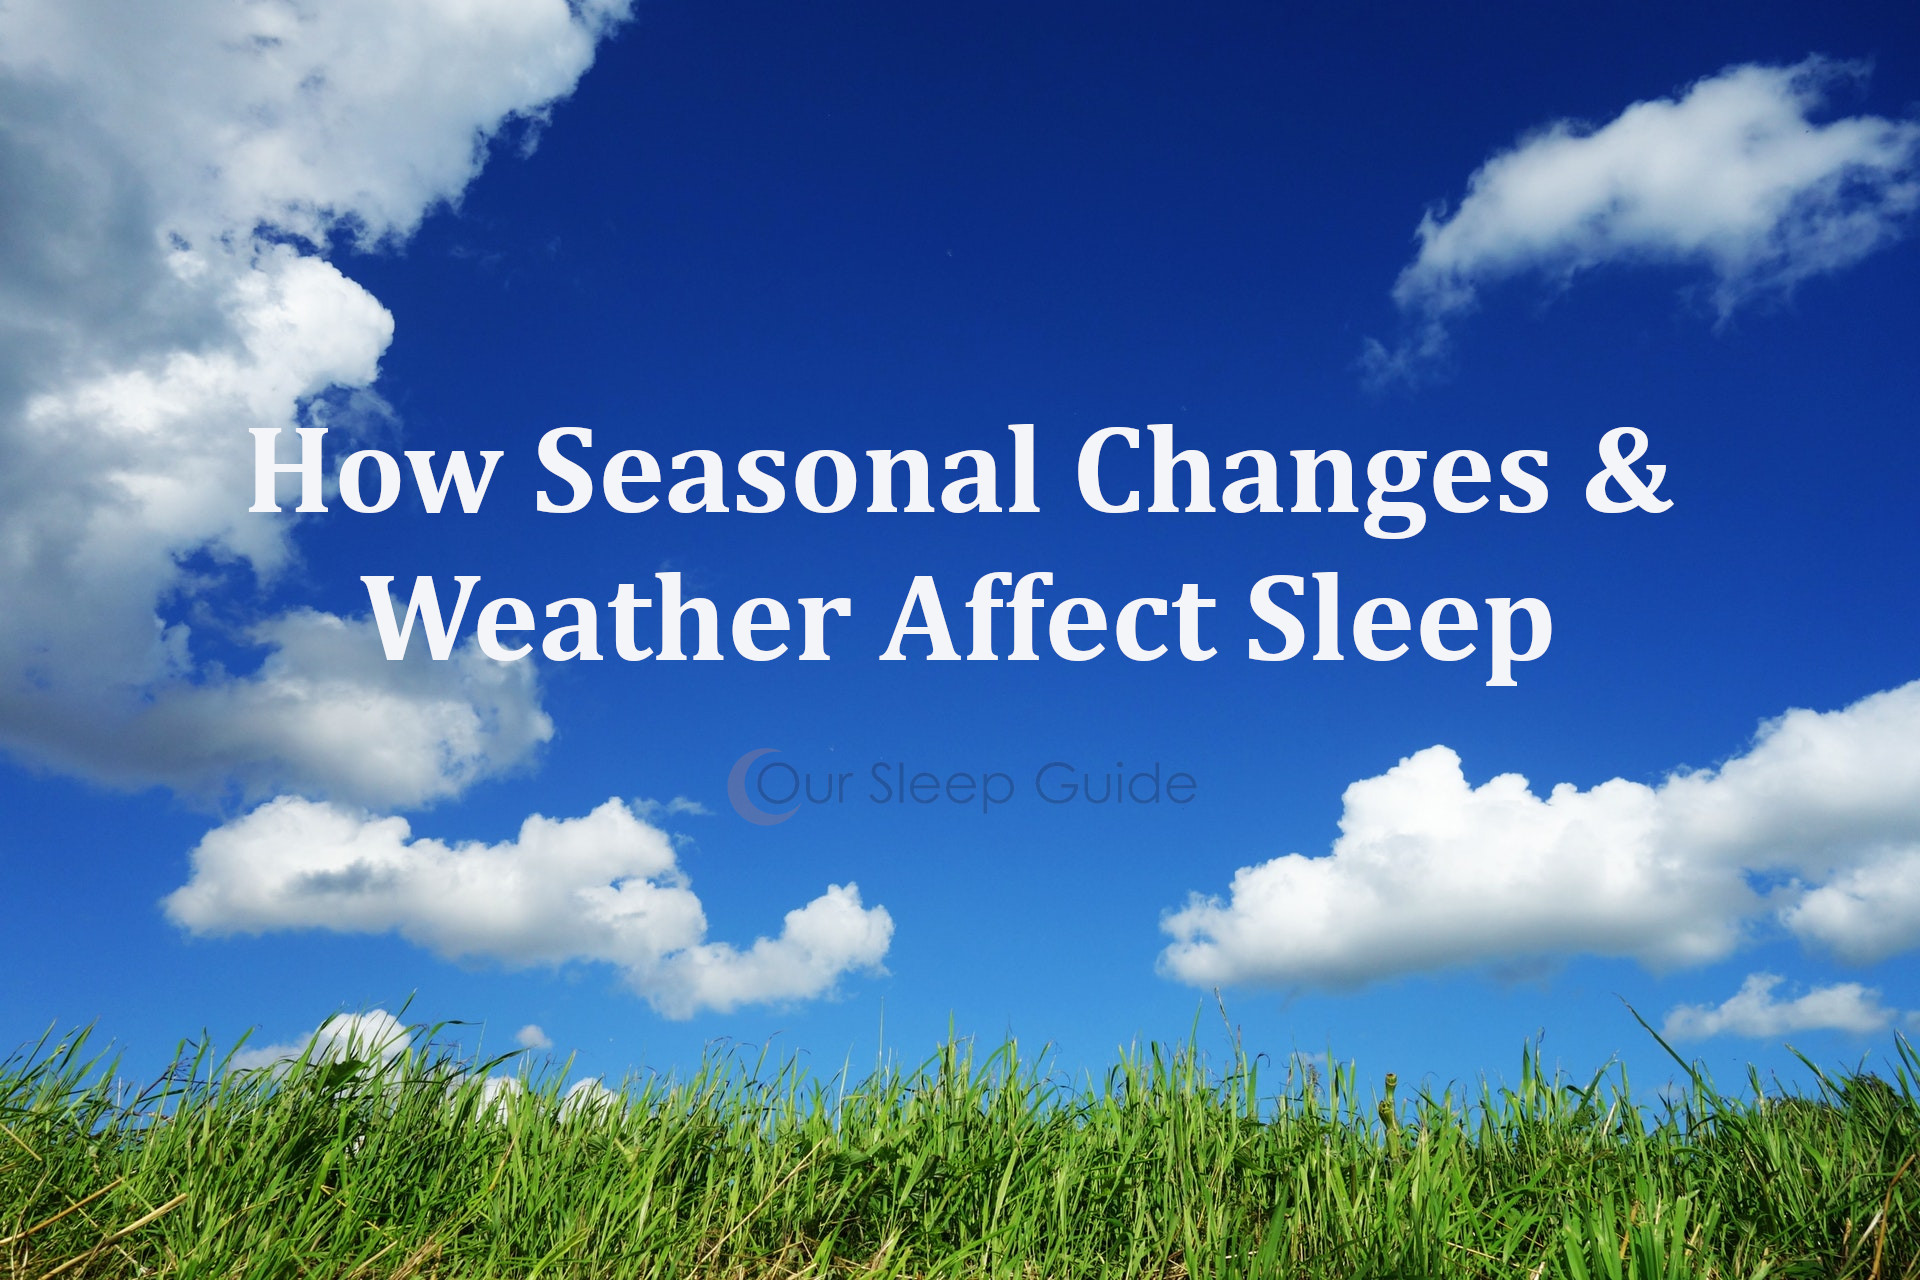 how seasonal changes & weather affect sleep